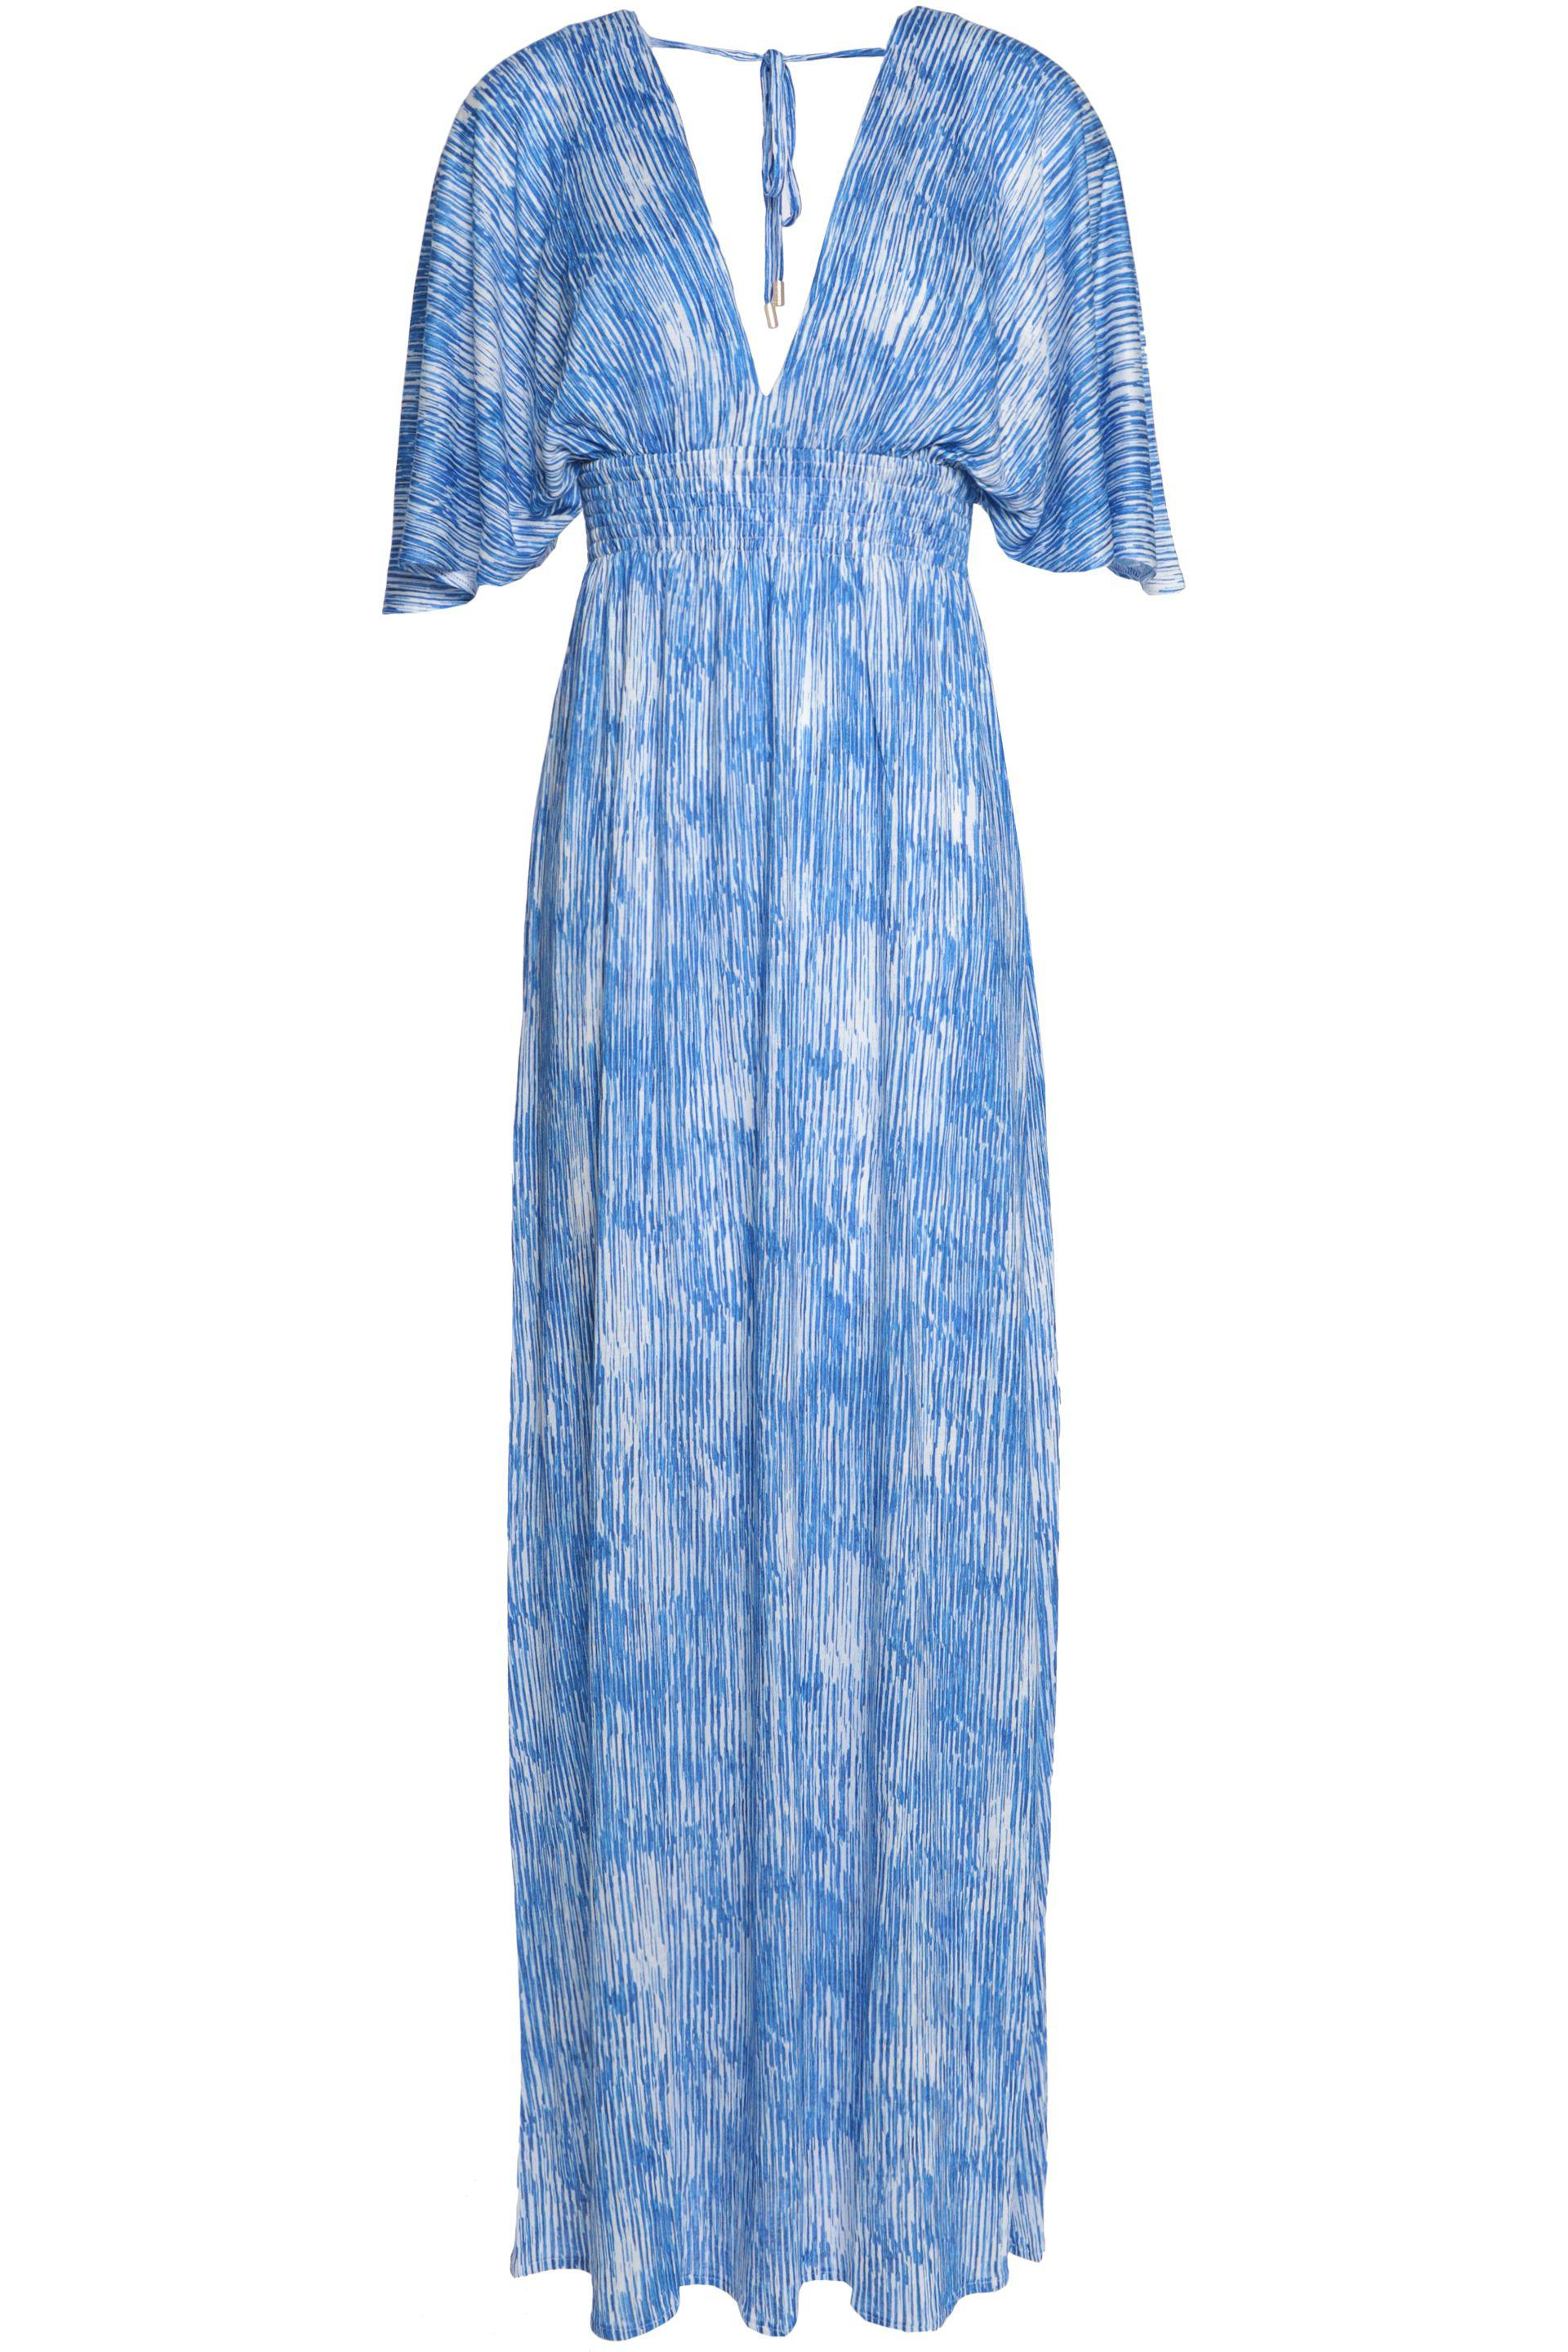 Melissa Odabash Woman Gathered Floral-print Crepe De Chine Coverup Blue Size M Melissa Odabash Wiki Sale Online Inexpensive Cheap Online Limit Discount 2018 New Online JsrG91bDp